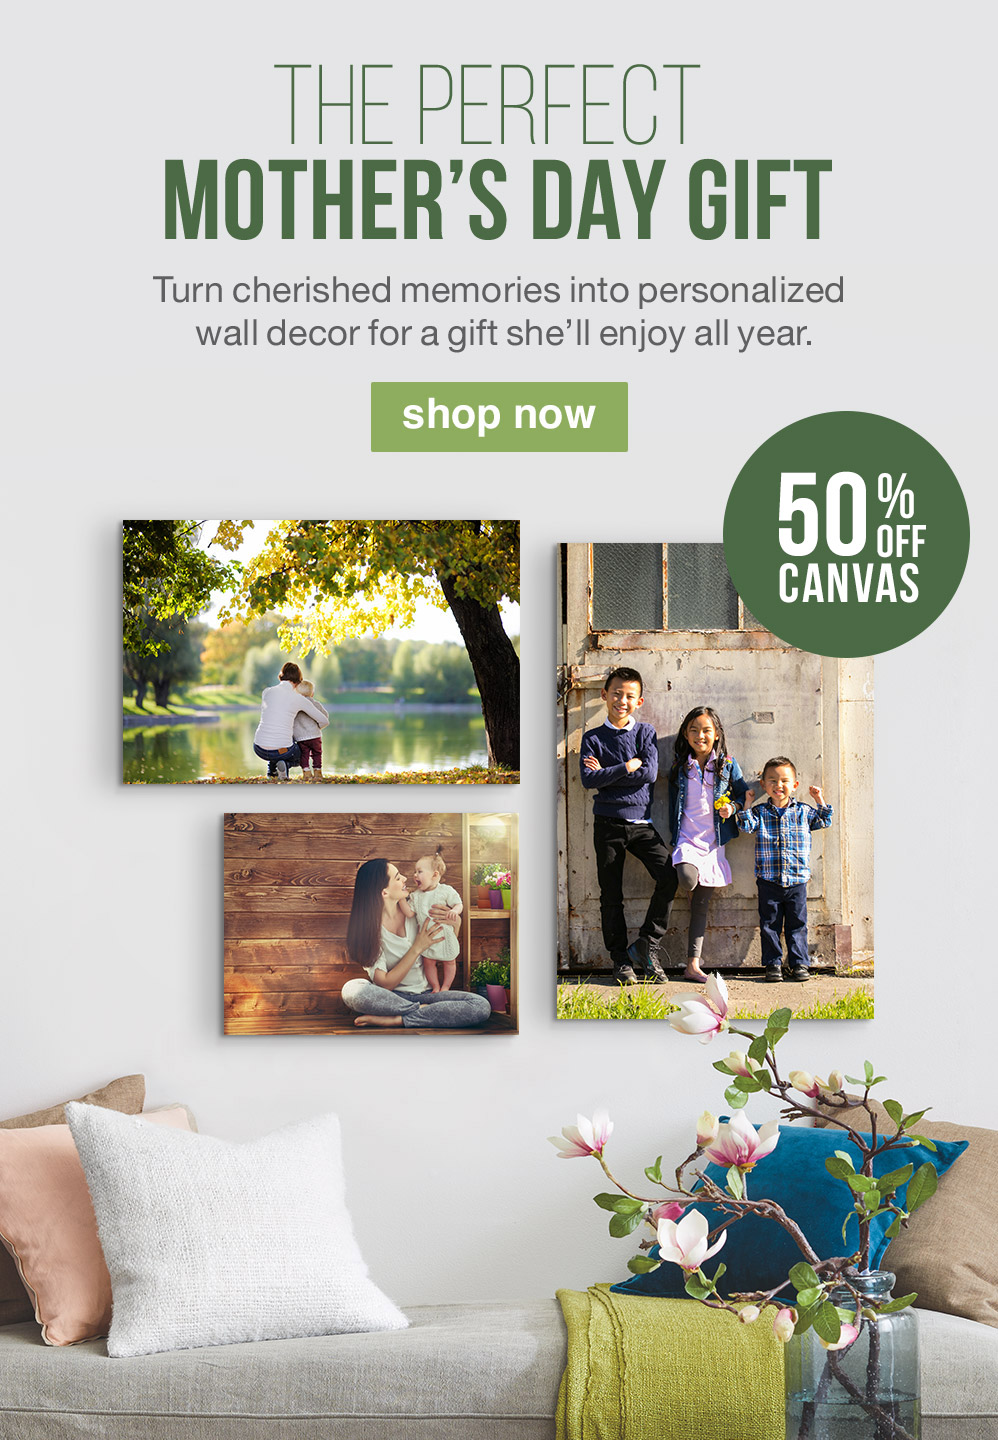 THE PERFECT MOTHER'S DAY GIFT. Turn cherished memories into personalized wall decor for a gift she'll enjoy all year. 50% OFF CANVAS. SHOP NOW